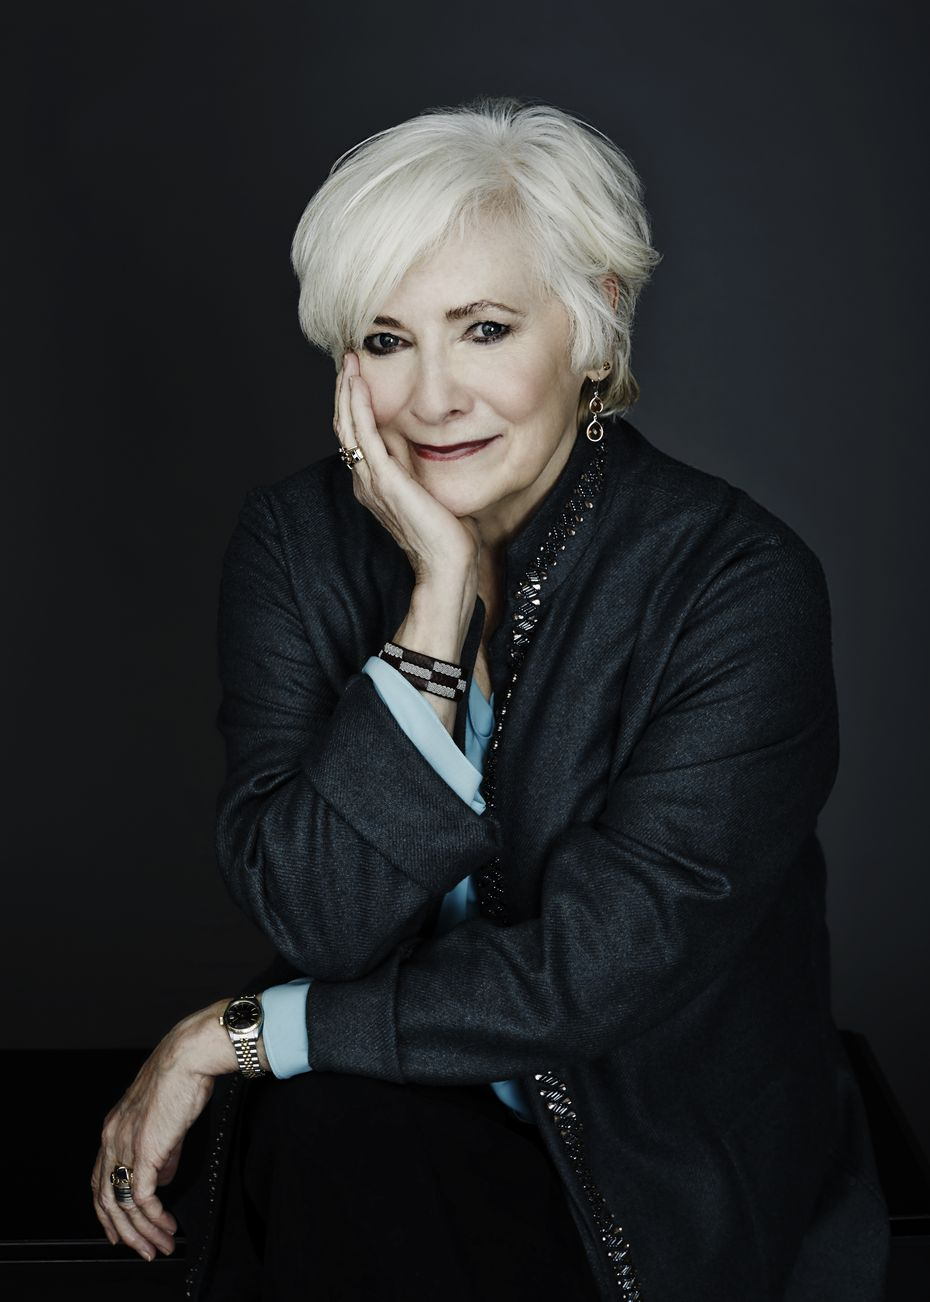 Fort Worth-raised Betty Buckley stars in the national touring production of Hello, Dolly! coming to Dallas.